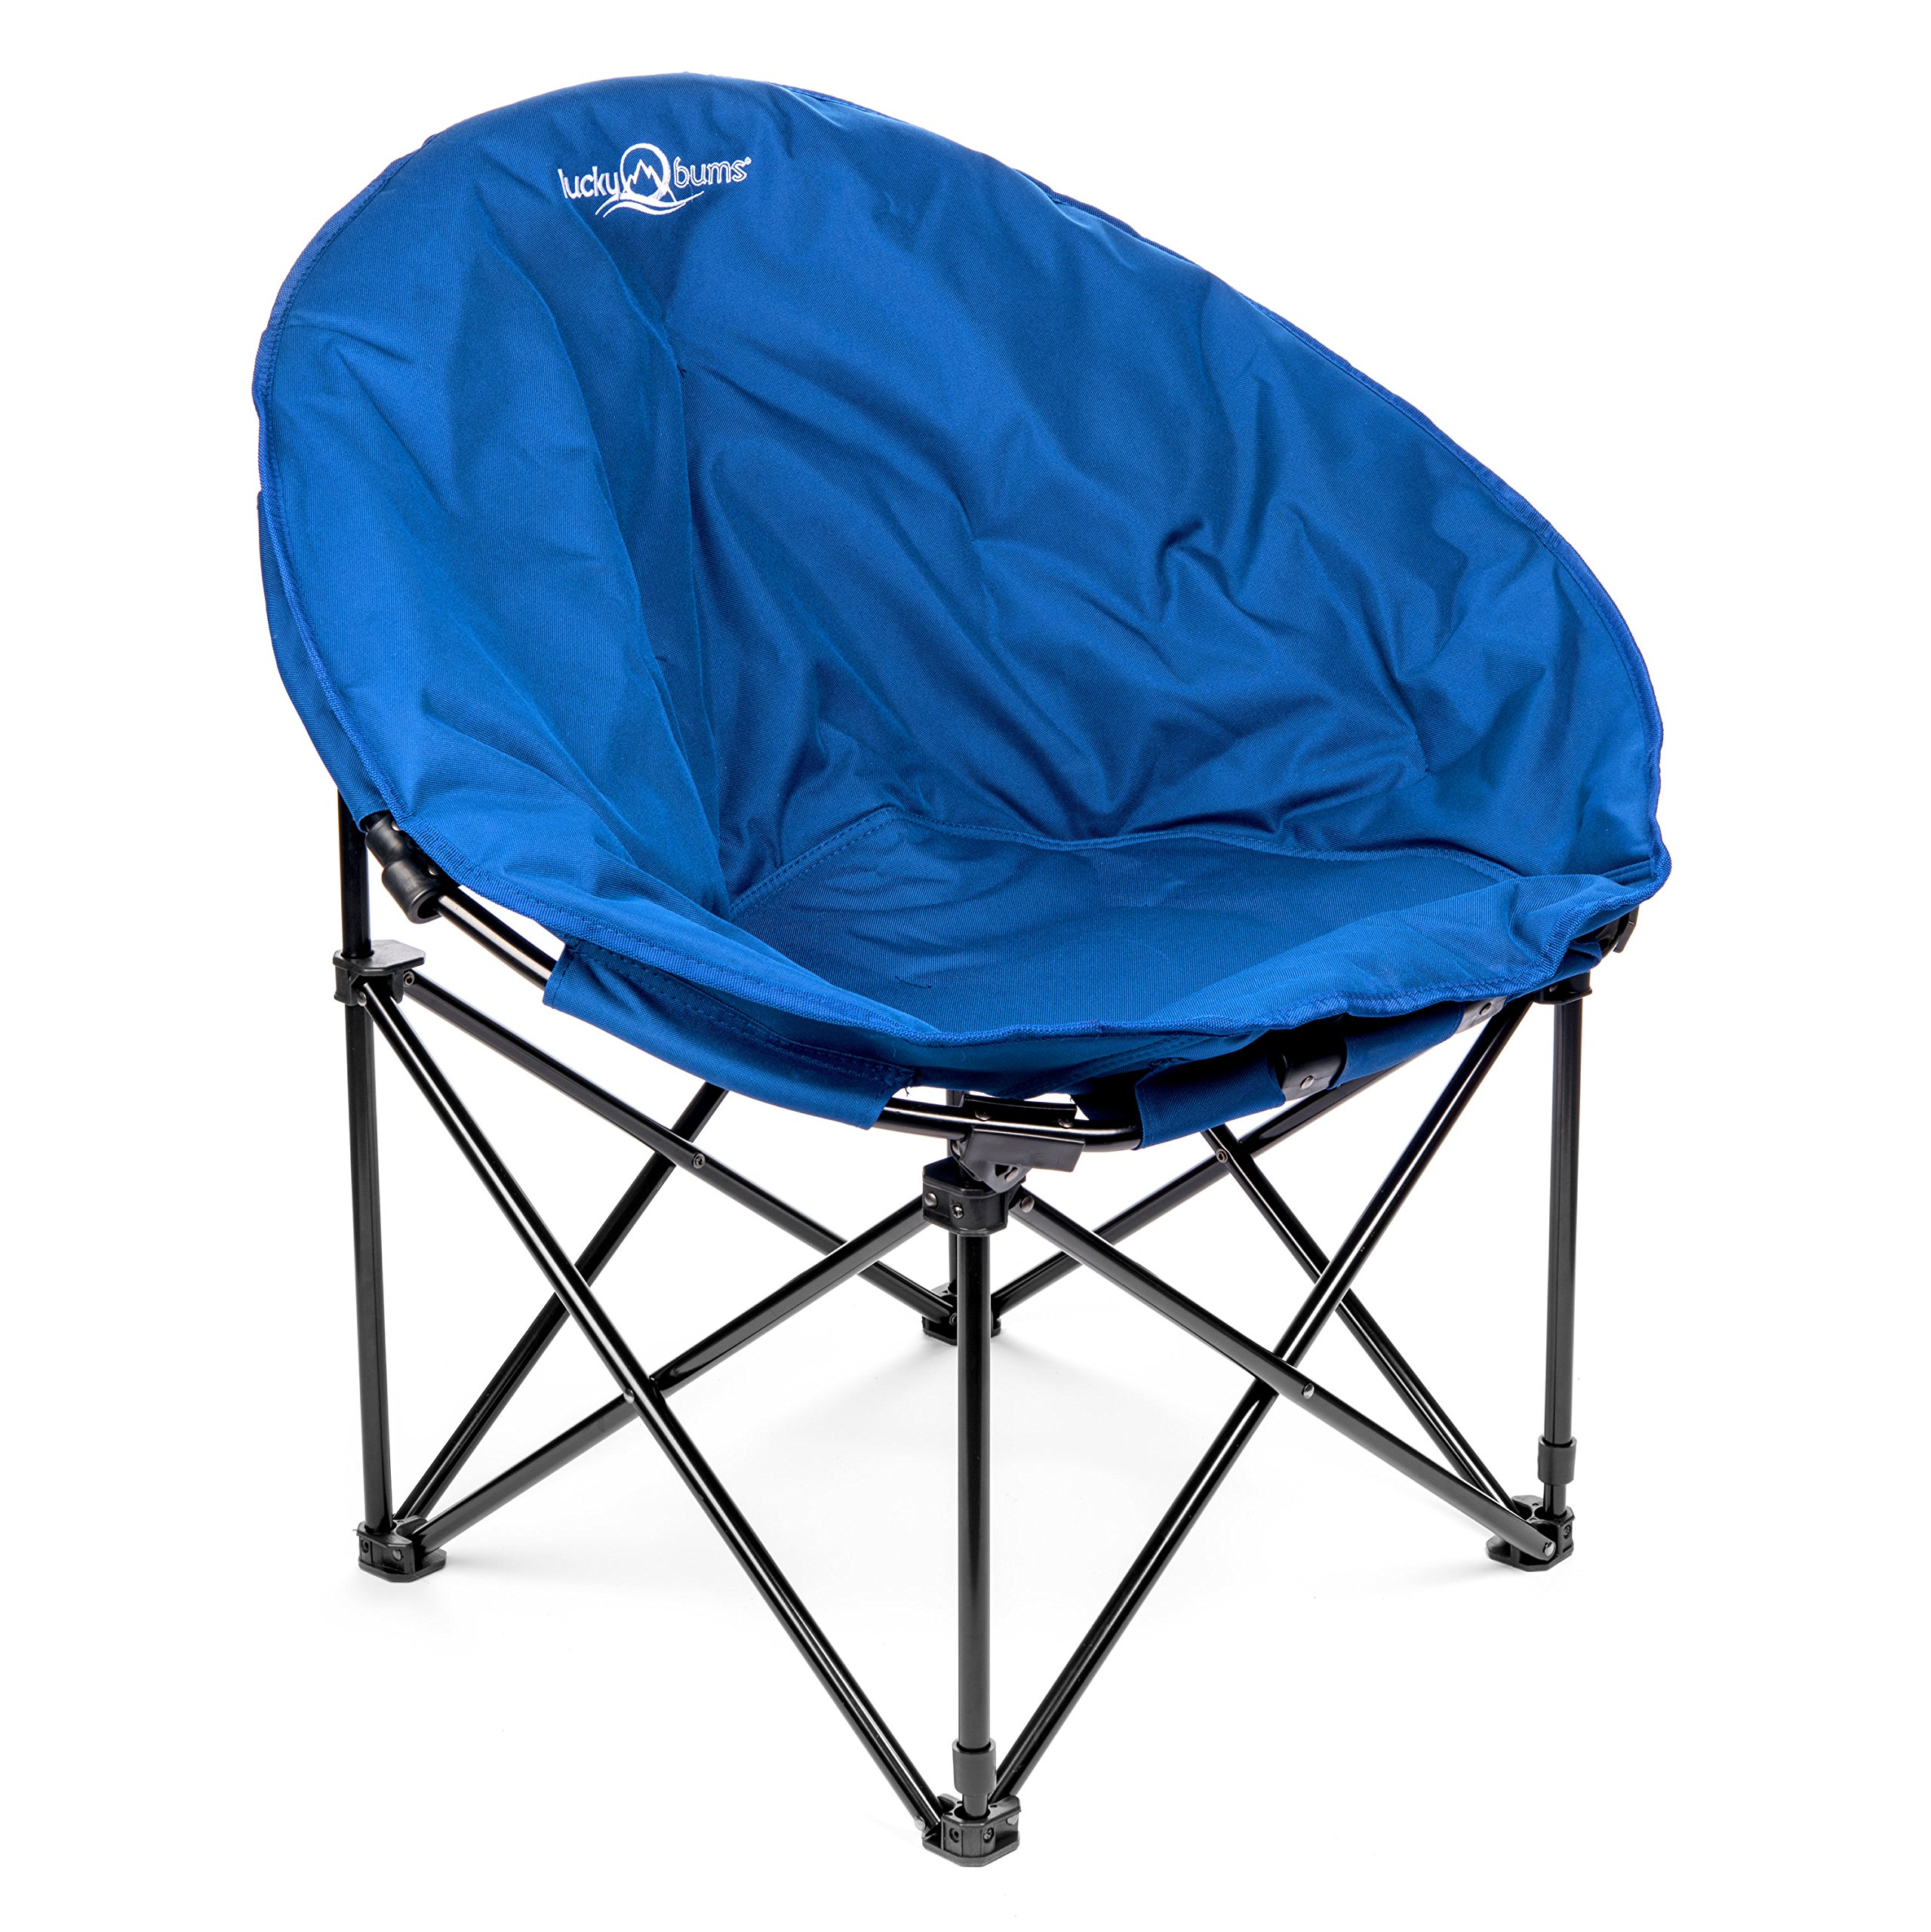 lucky bums camp chair restoration hardware chairs dining buy quick in cheap price on alibaba com moon comfort lightweight durable with carrying case